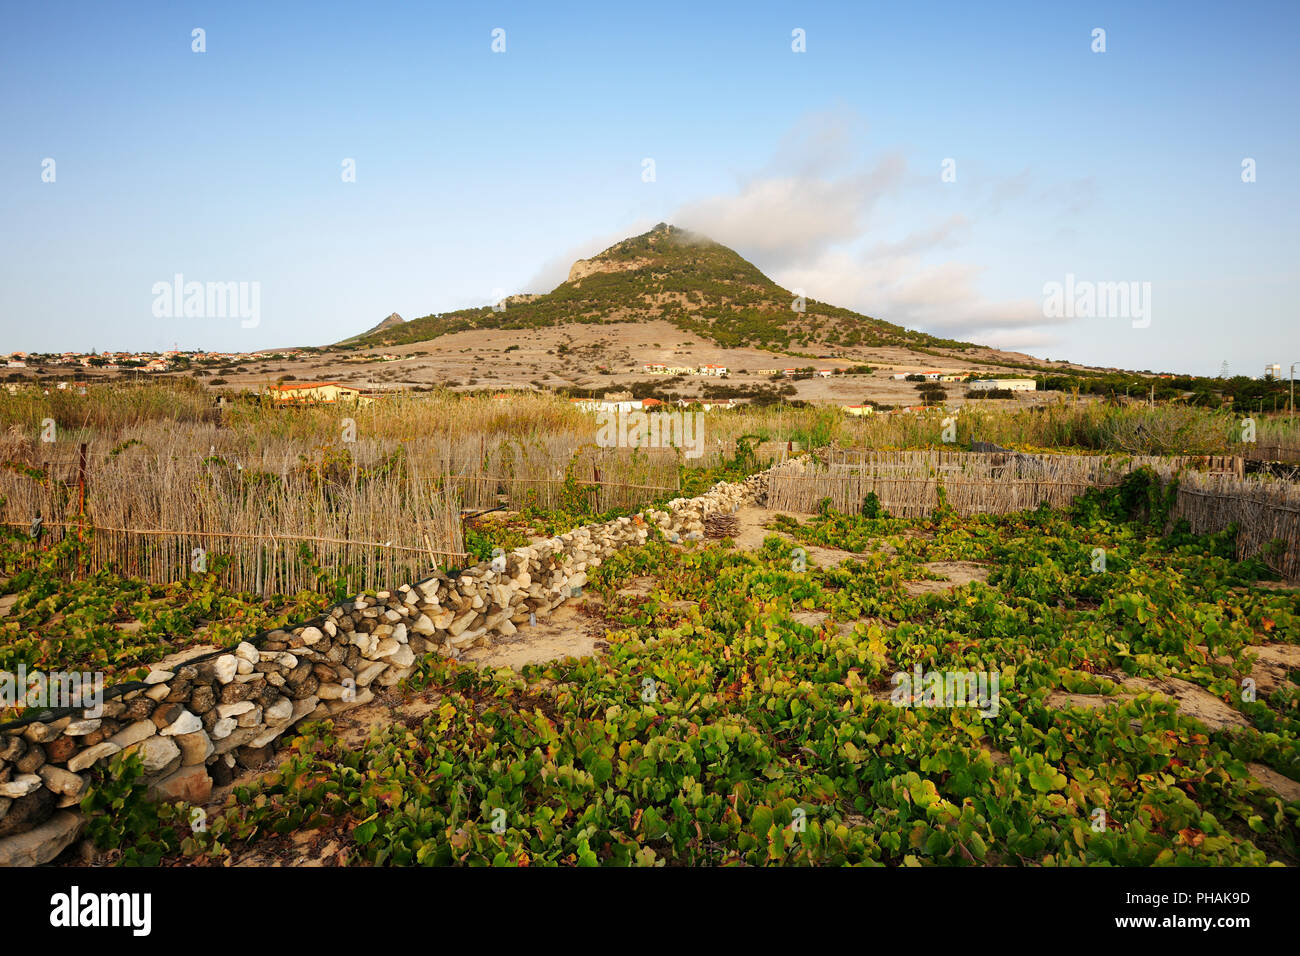 Vineyards of Camacha. Porto Santo island, Madeira - Stock Image